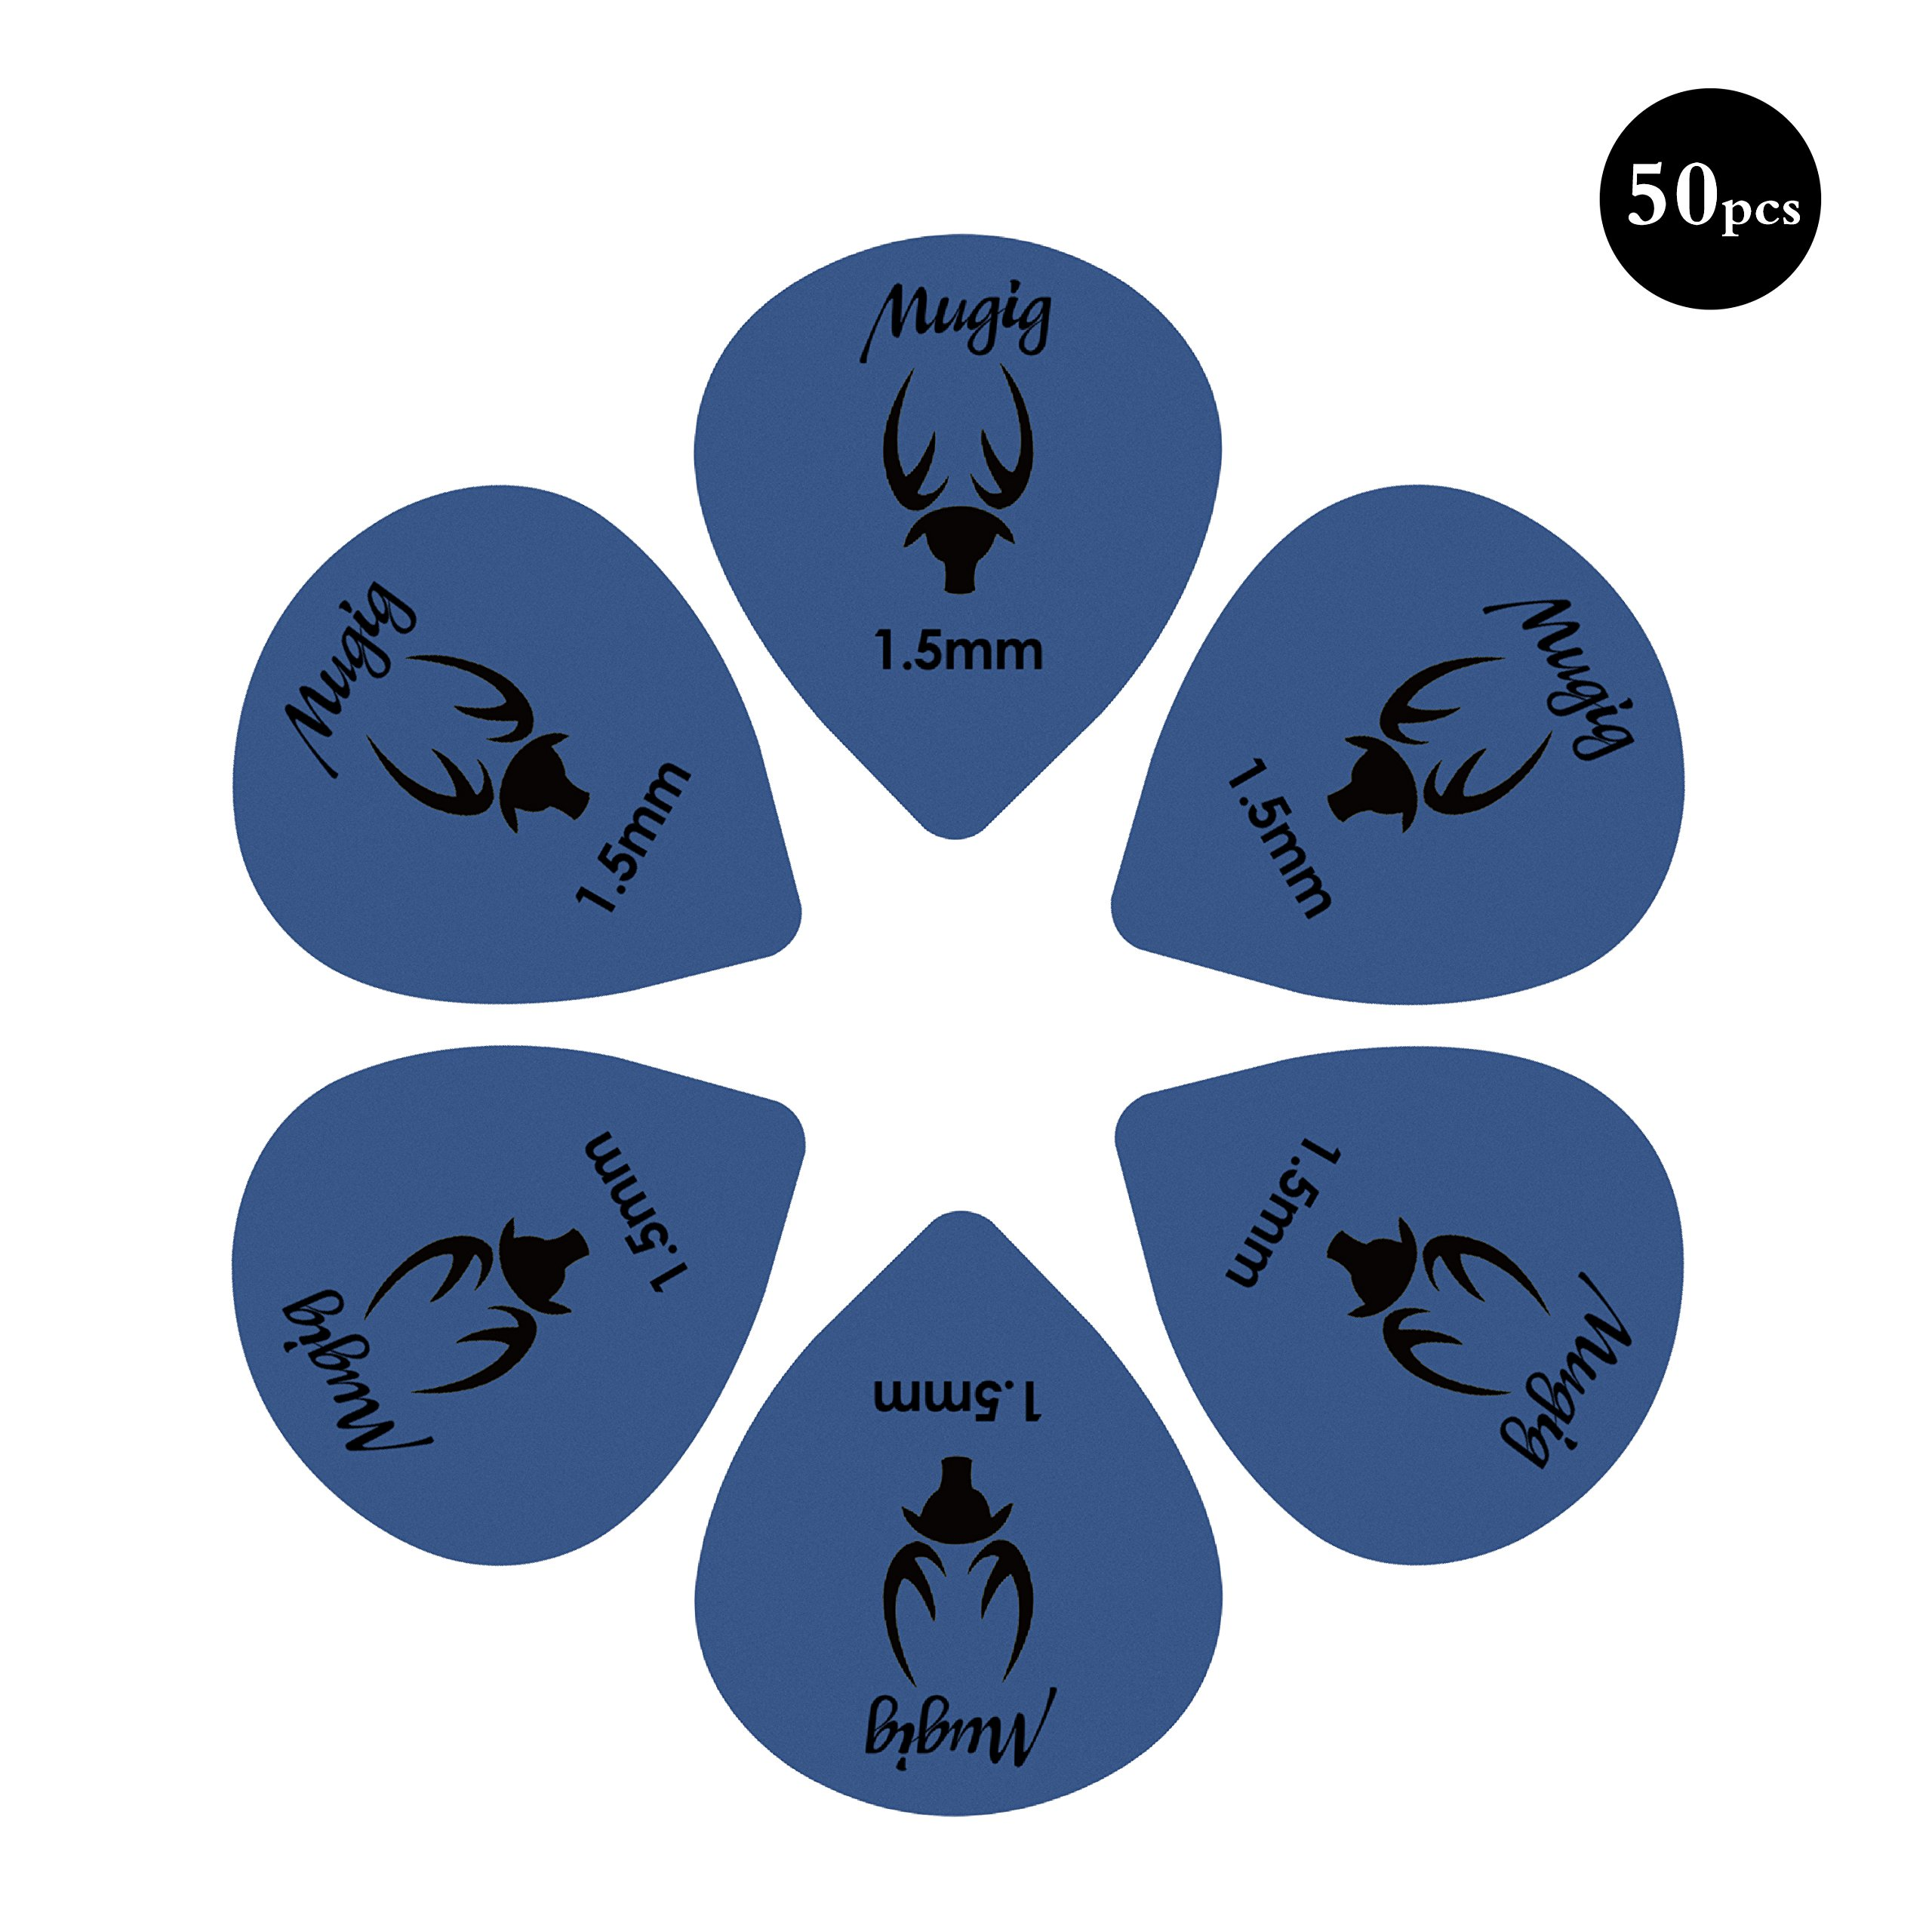 Mugig Guitar Picks, Guitar Accessories, Delrin Guitar Plectrums ,Pack of 50 (1.5MM)